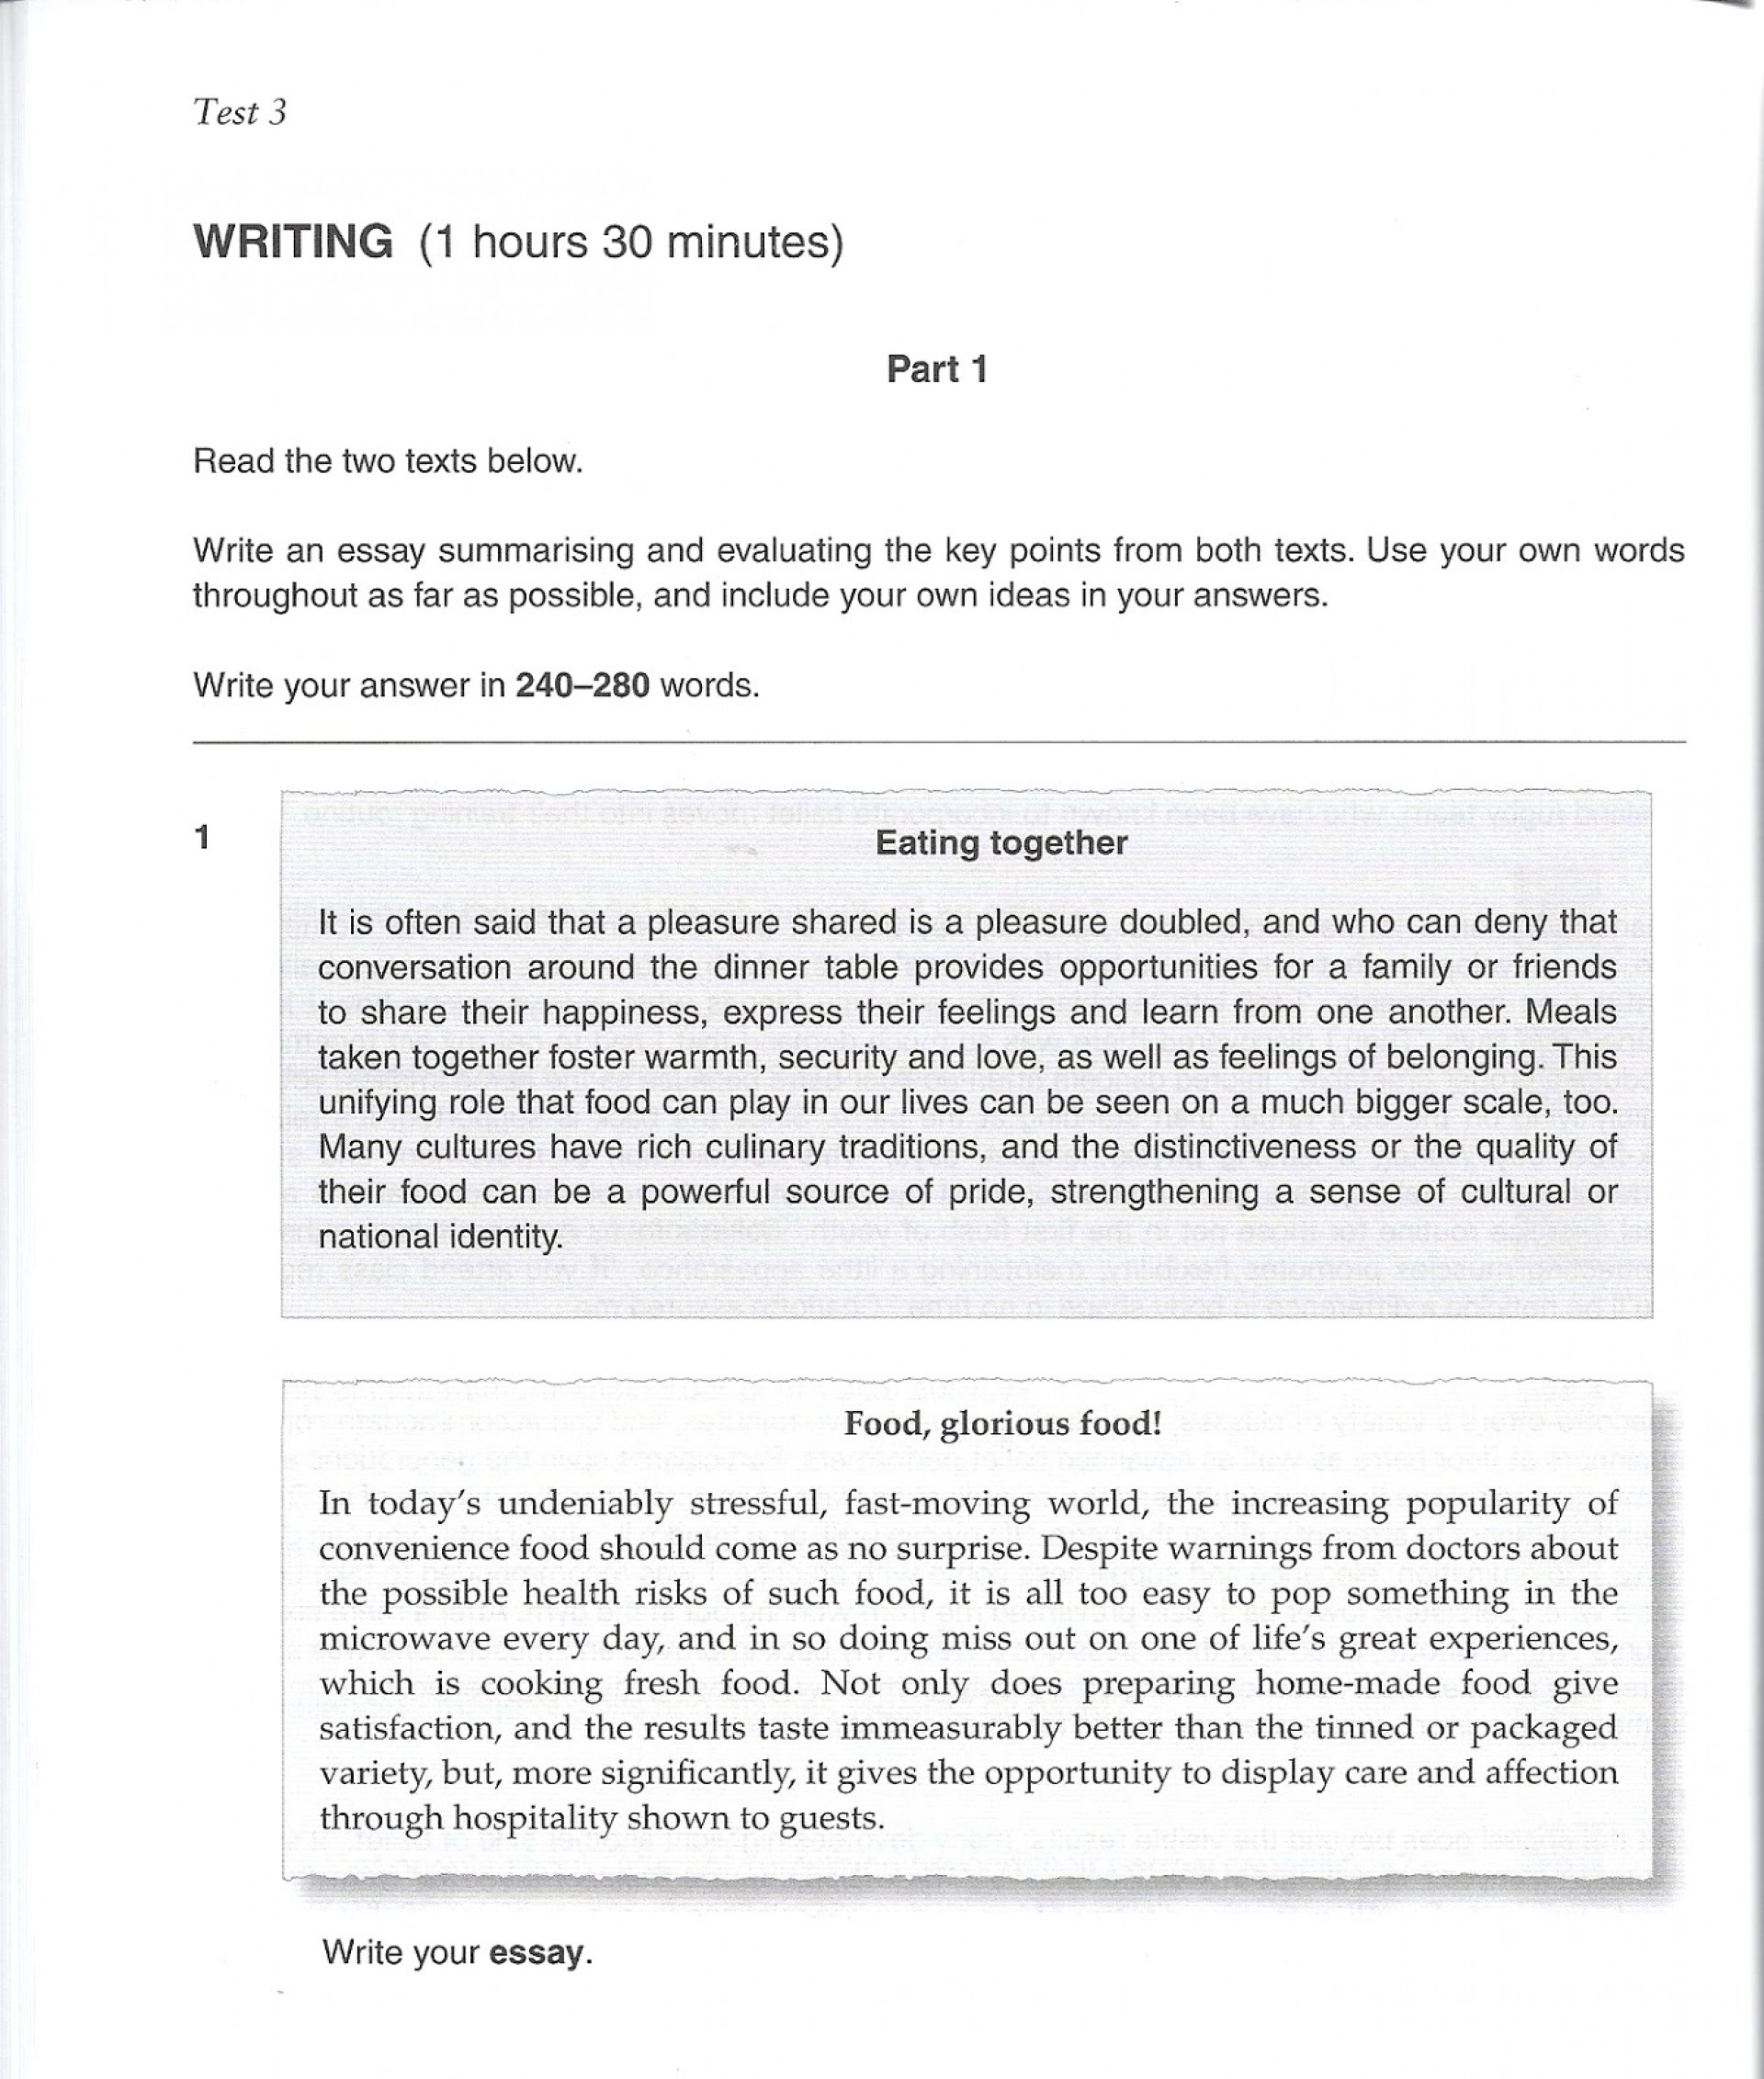 008 Essay Of Basketball Example Writingtask Cpe Fearsome Short My Favorite Sport 1920